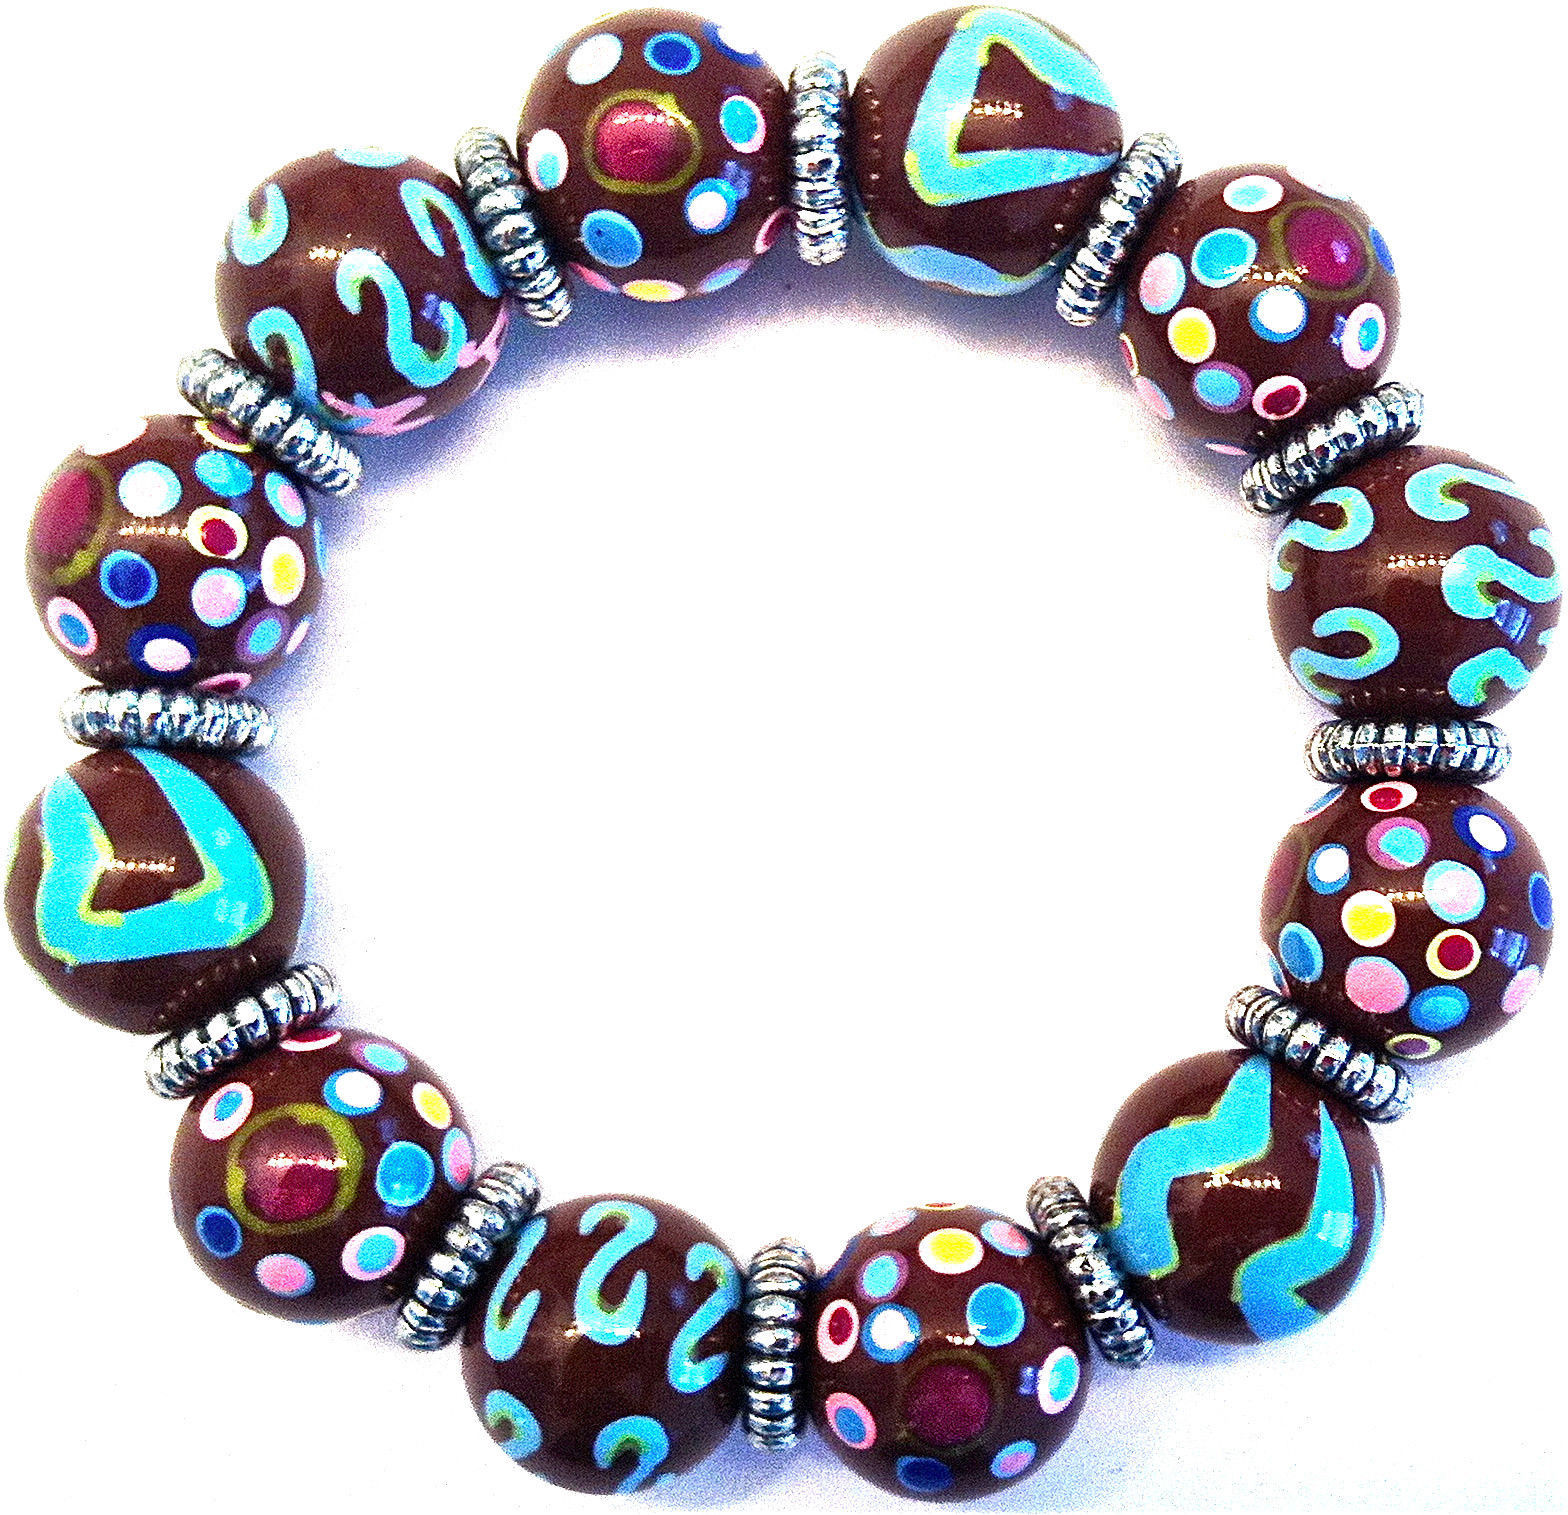 NEW ANGELA MOORE BROWN TEAL PINK BRACELET SILVER SPACERS POLKO DOTS & STRIPES image 2